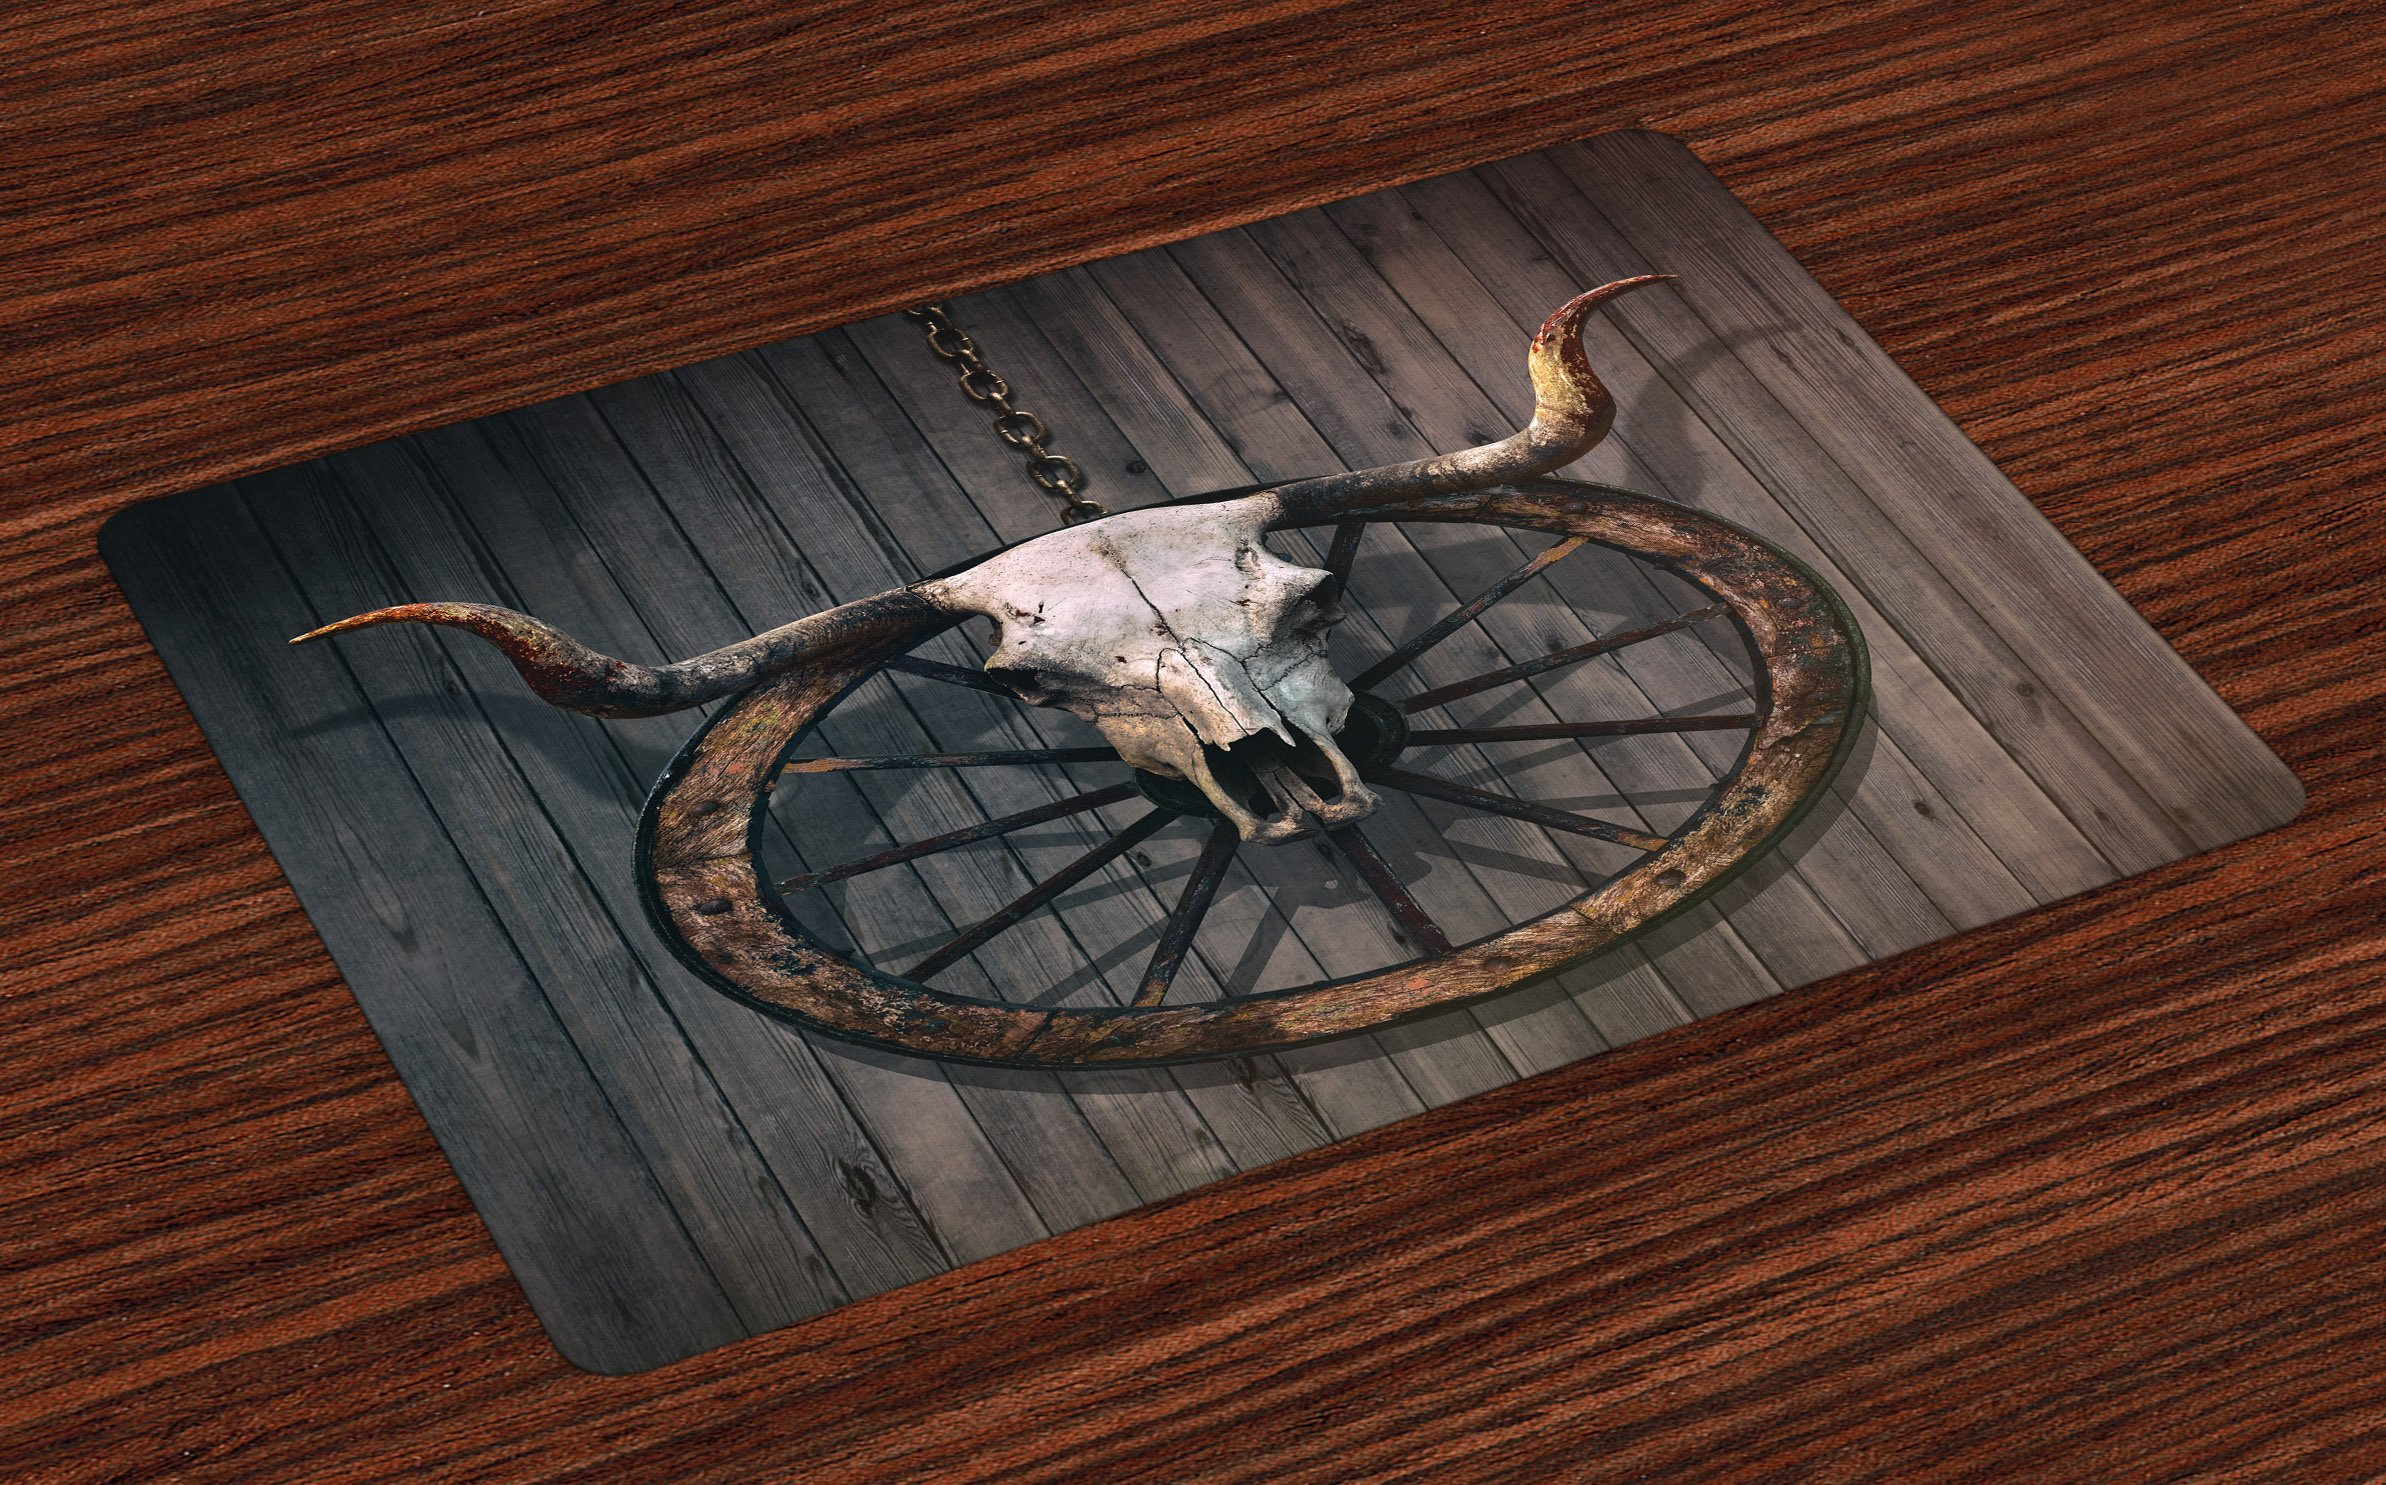 Ambesonne Barn Wood Wagon Wheel Place Mats Set of 4, Long Horned Bull Skull and Old West Wagon Wheel on Rustic Wall, Washable Fabric Placemats for Dining Room Kitchen Table Decor, Black Brown White